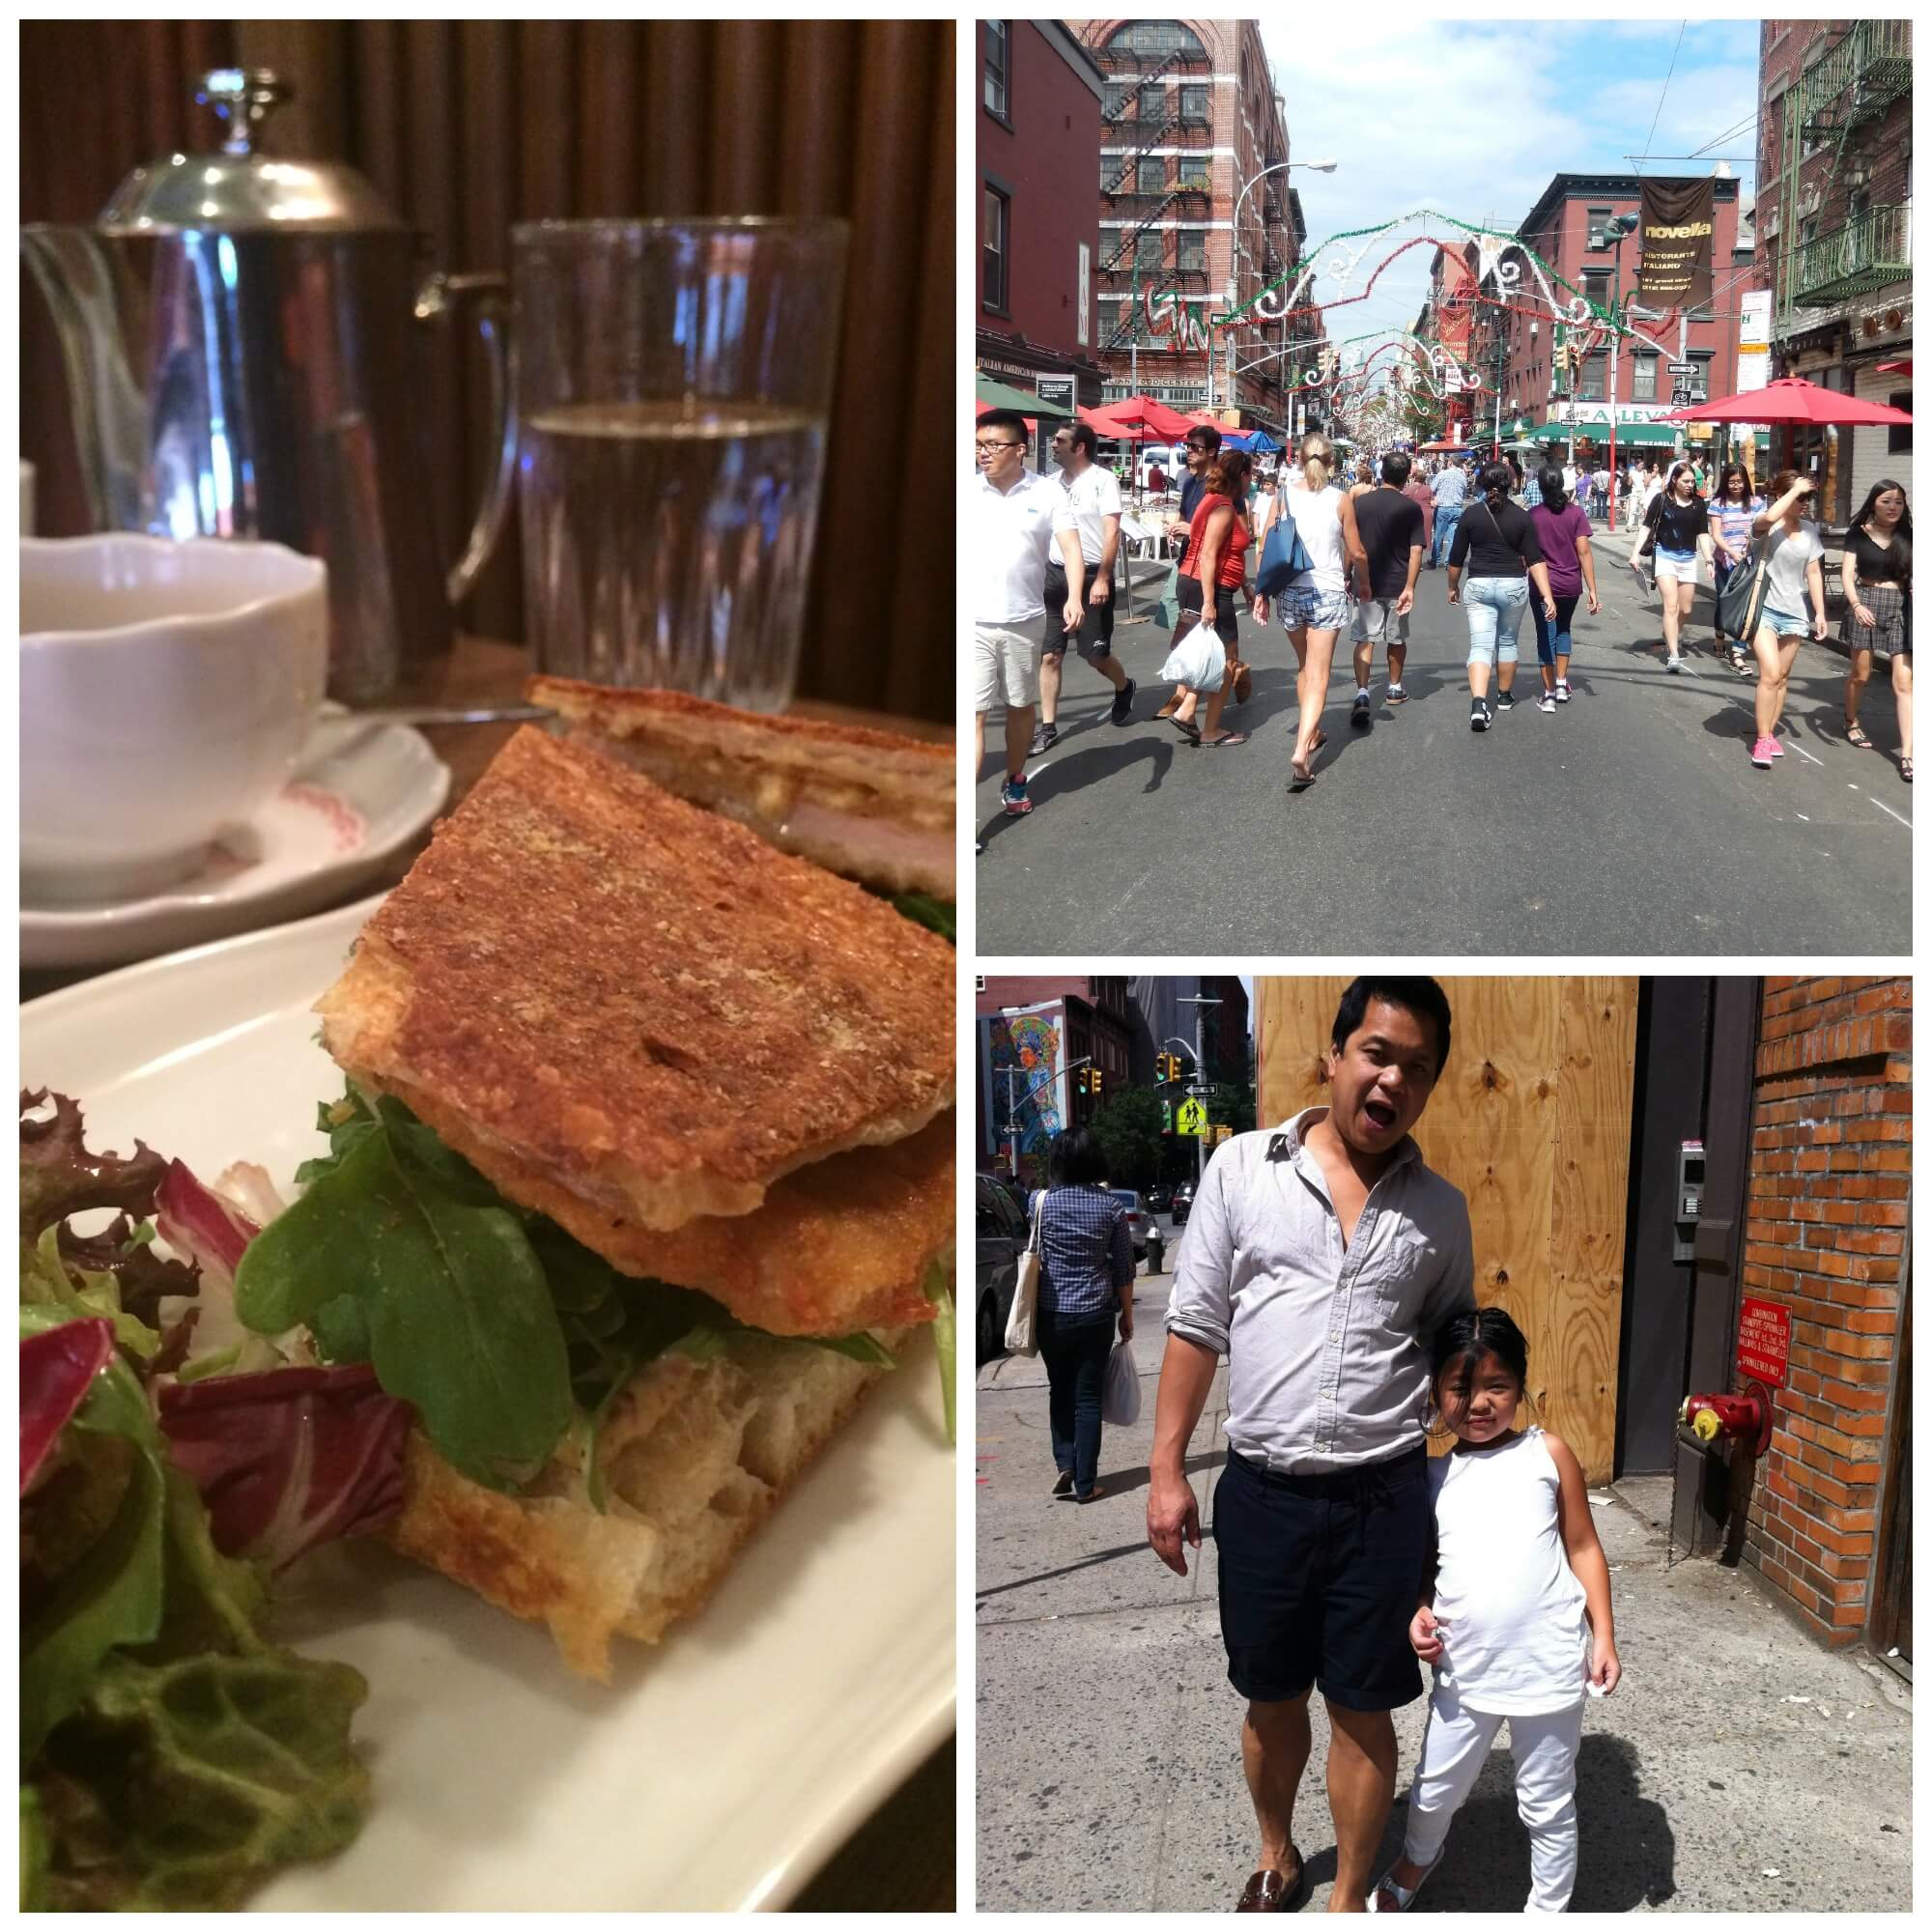 Insider's Food and Travel guide to NYC | Dish Our Town